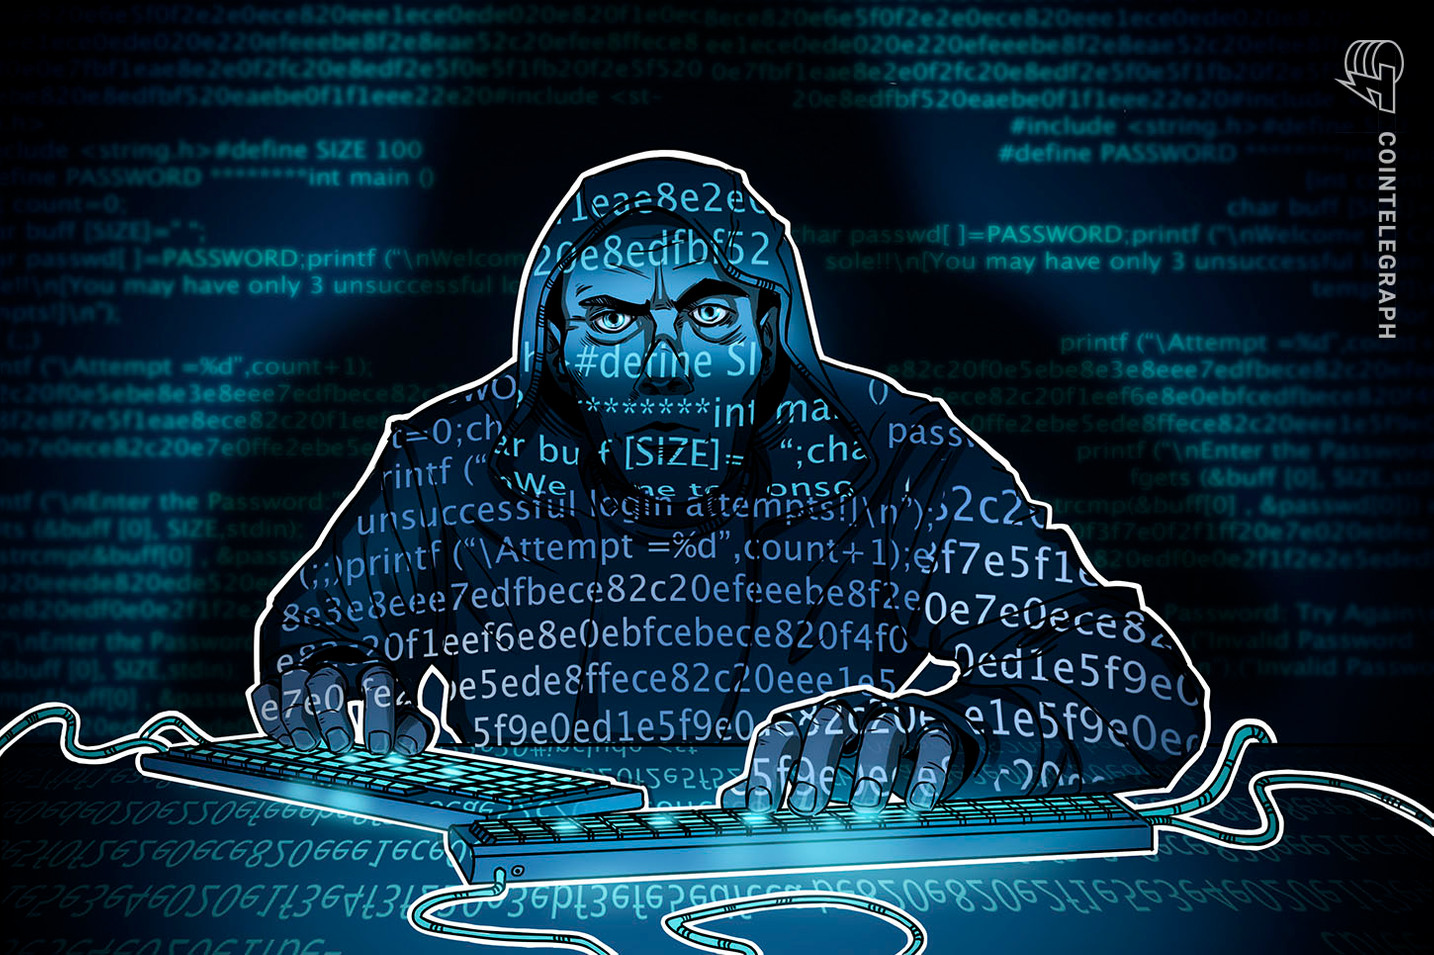 BlockFi users targeted in 'racist and vulgar' email attack